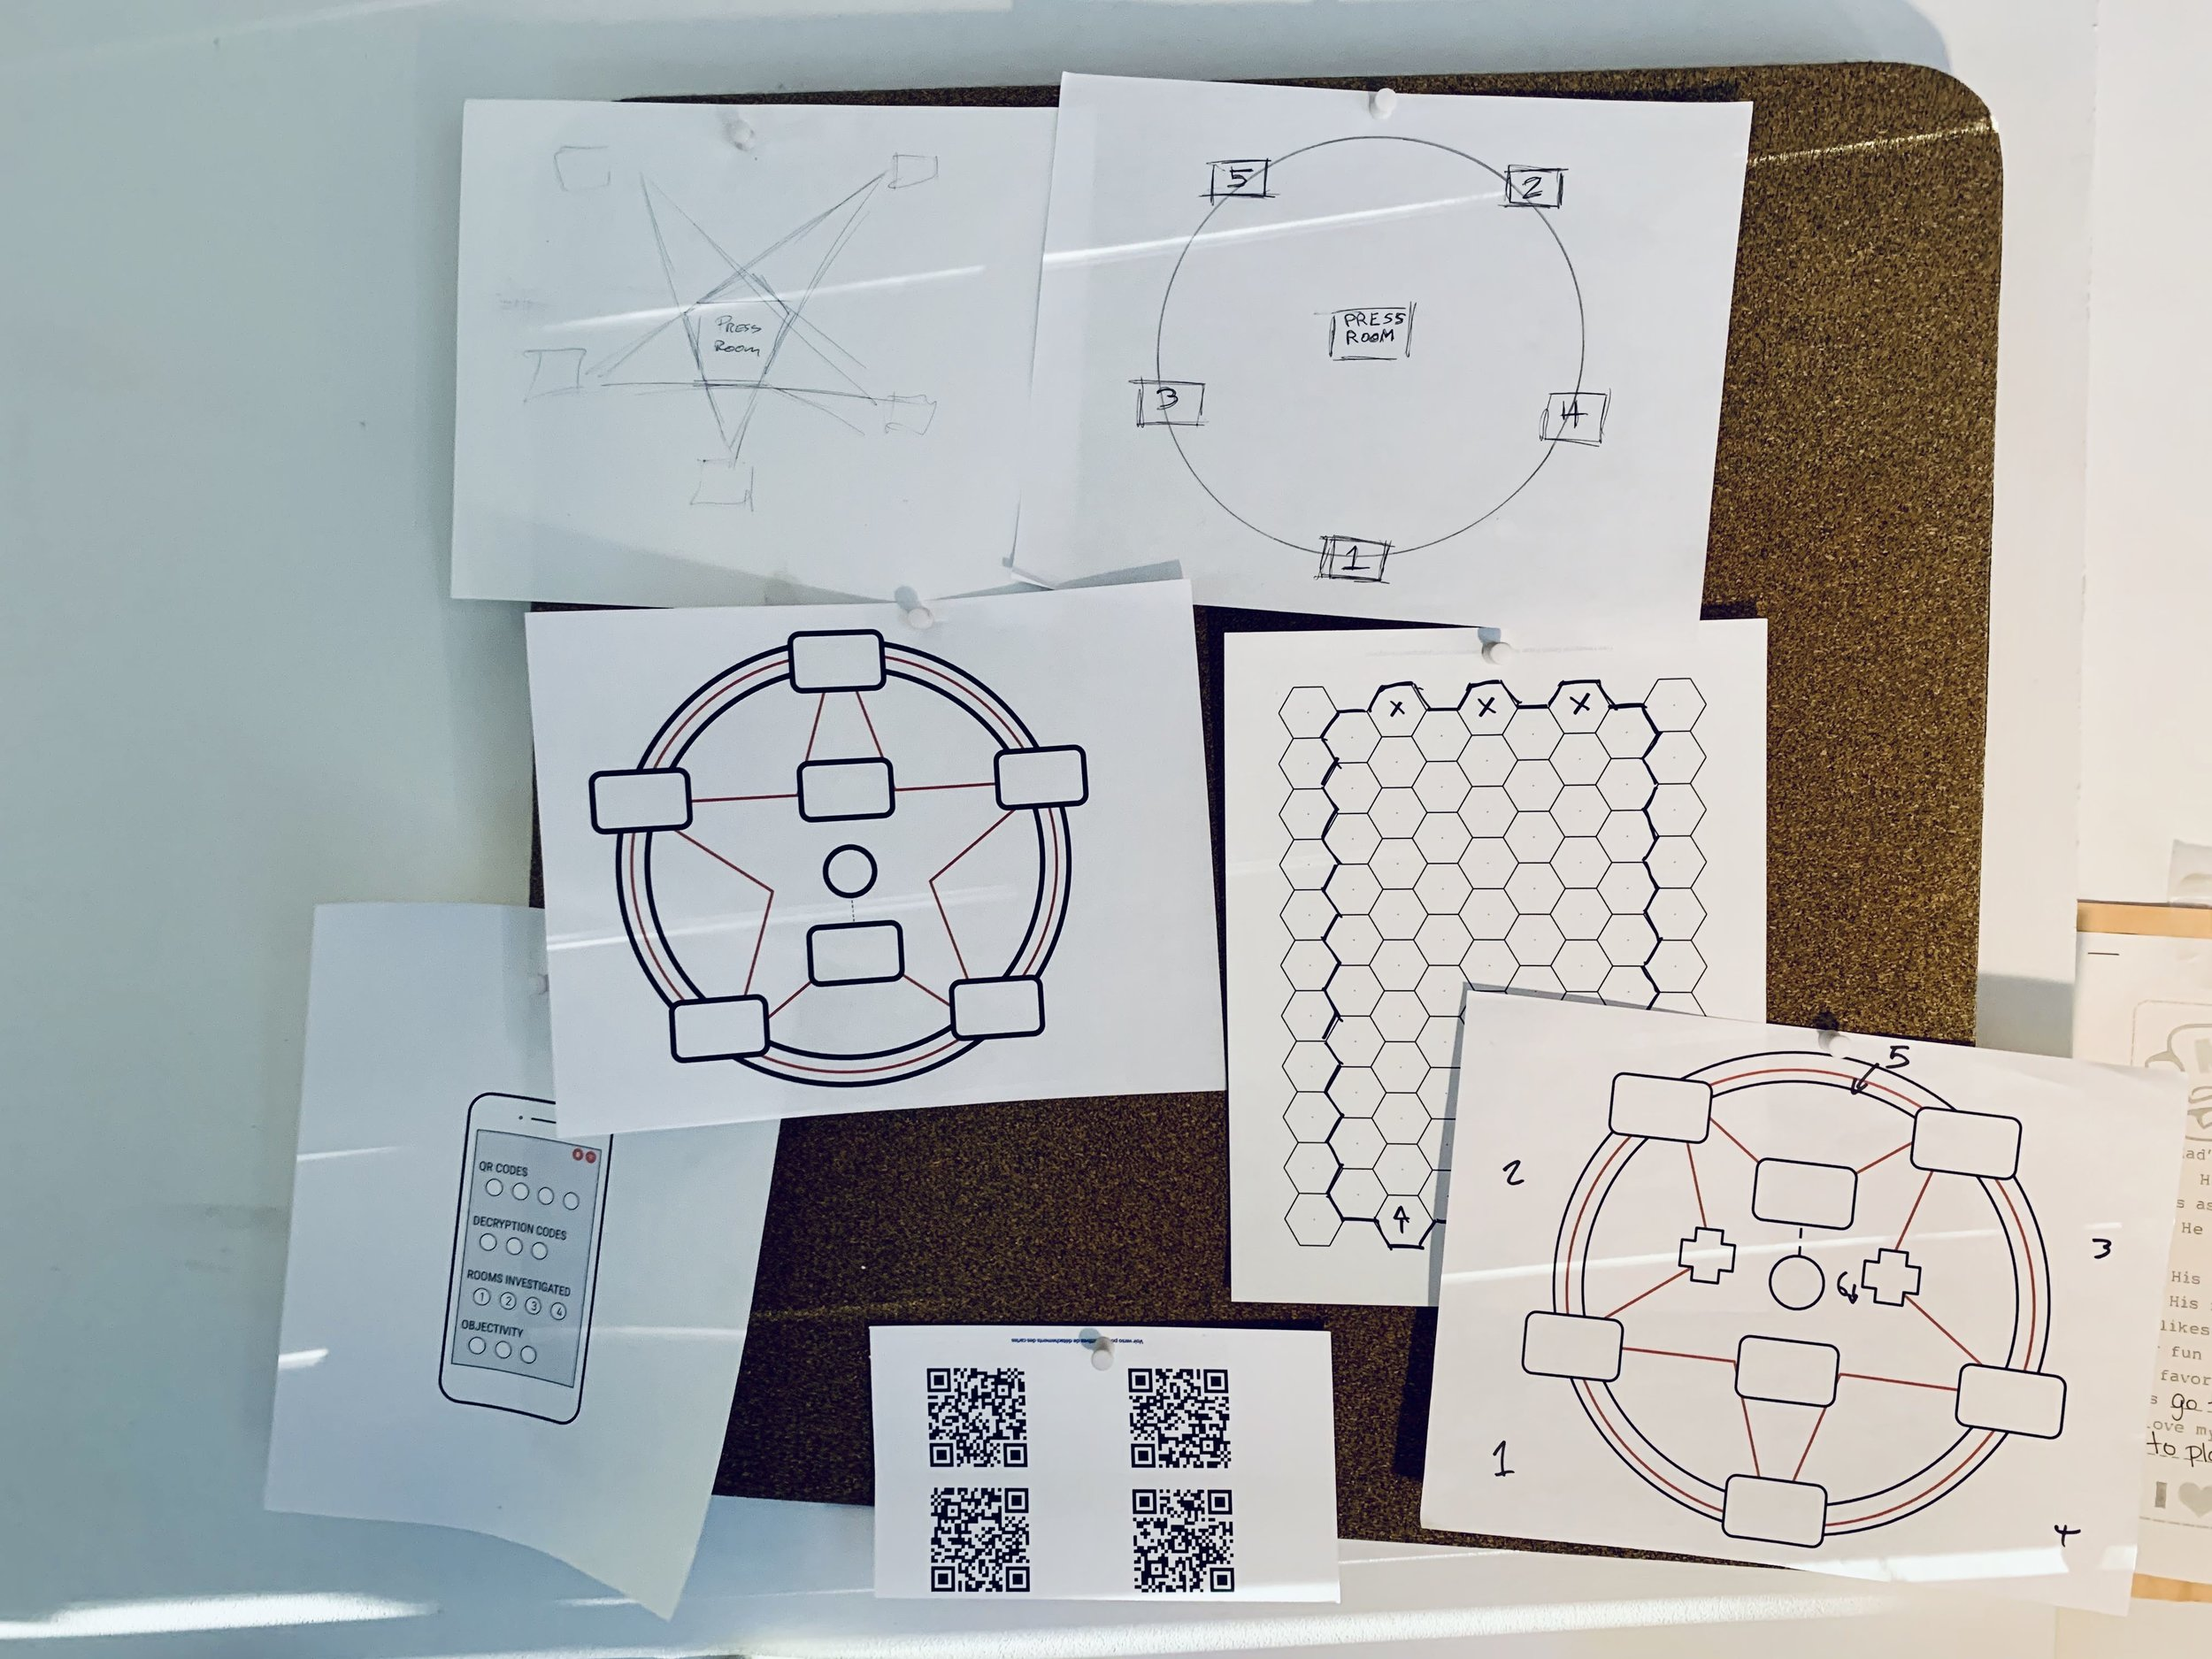 Techlandia - Pinboard of early game board sketches, which eventually transitioned into a hex tile map.